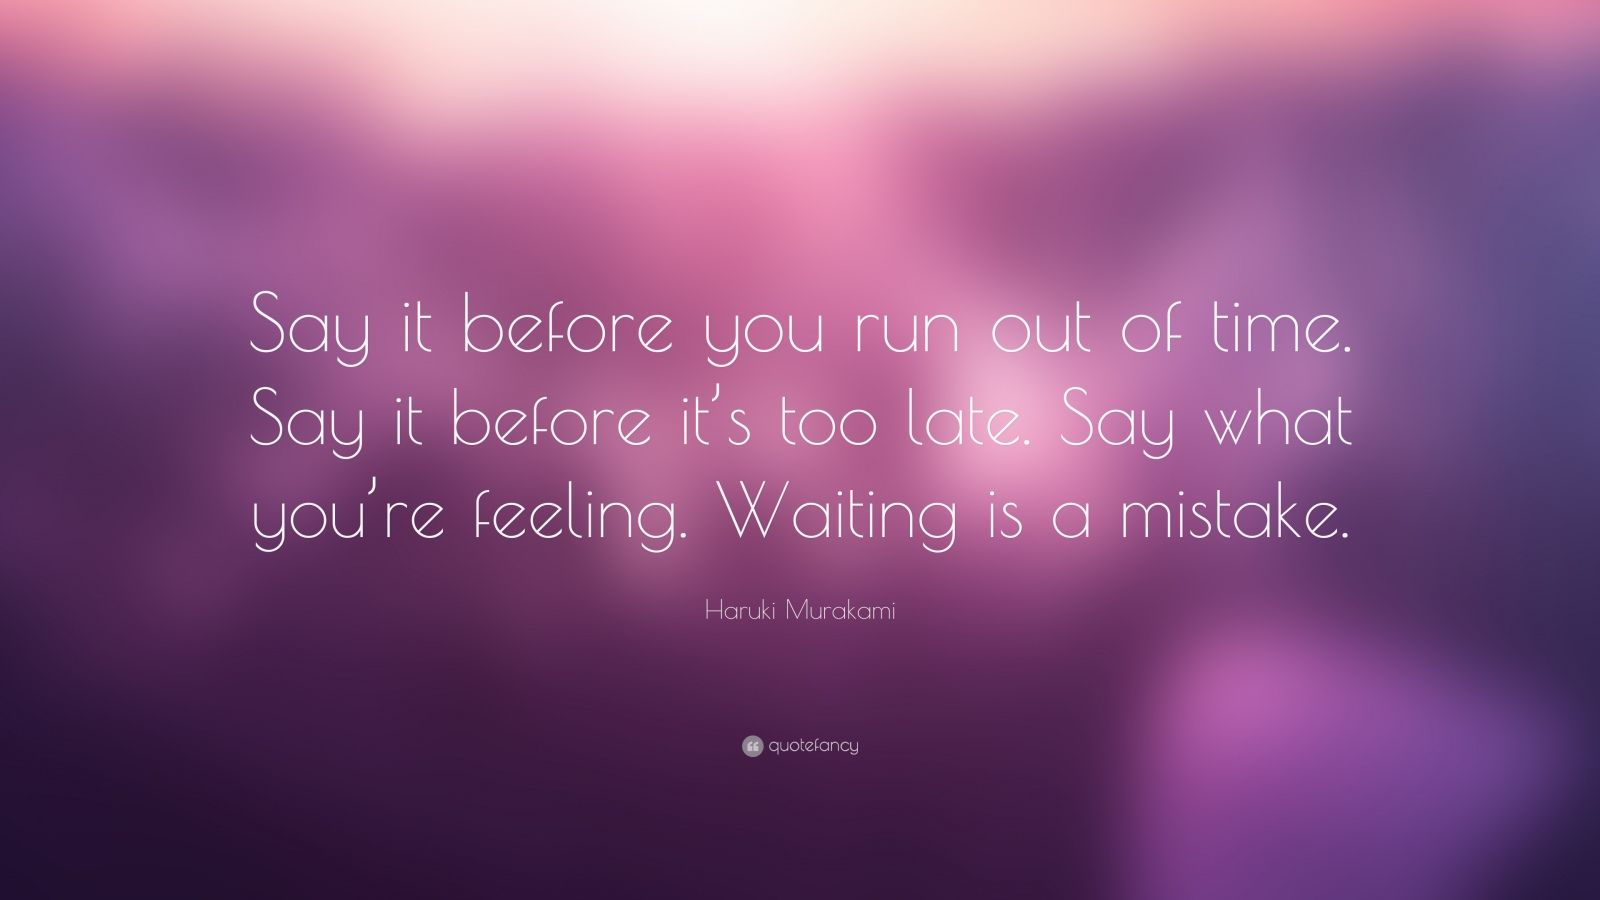 """Haruki Murakami Quote: """"Say it before you run out of time. Say it before it's too late. Say what you're feeling. Waiting is a mistake."""""""